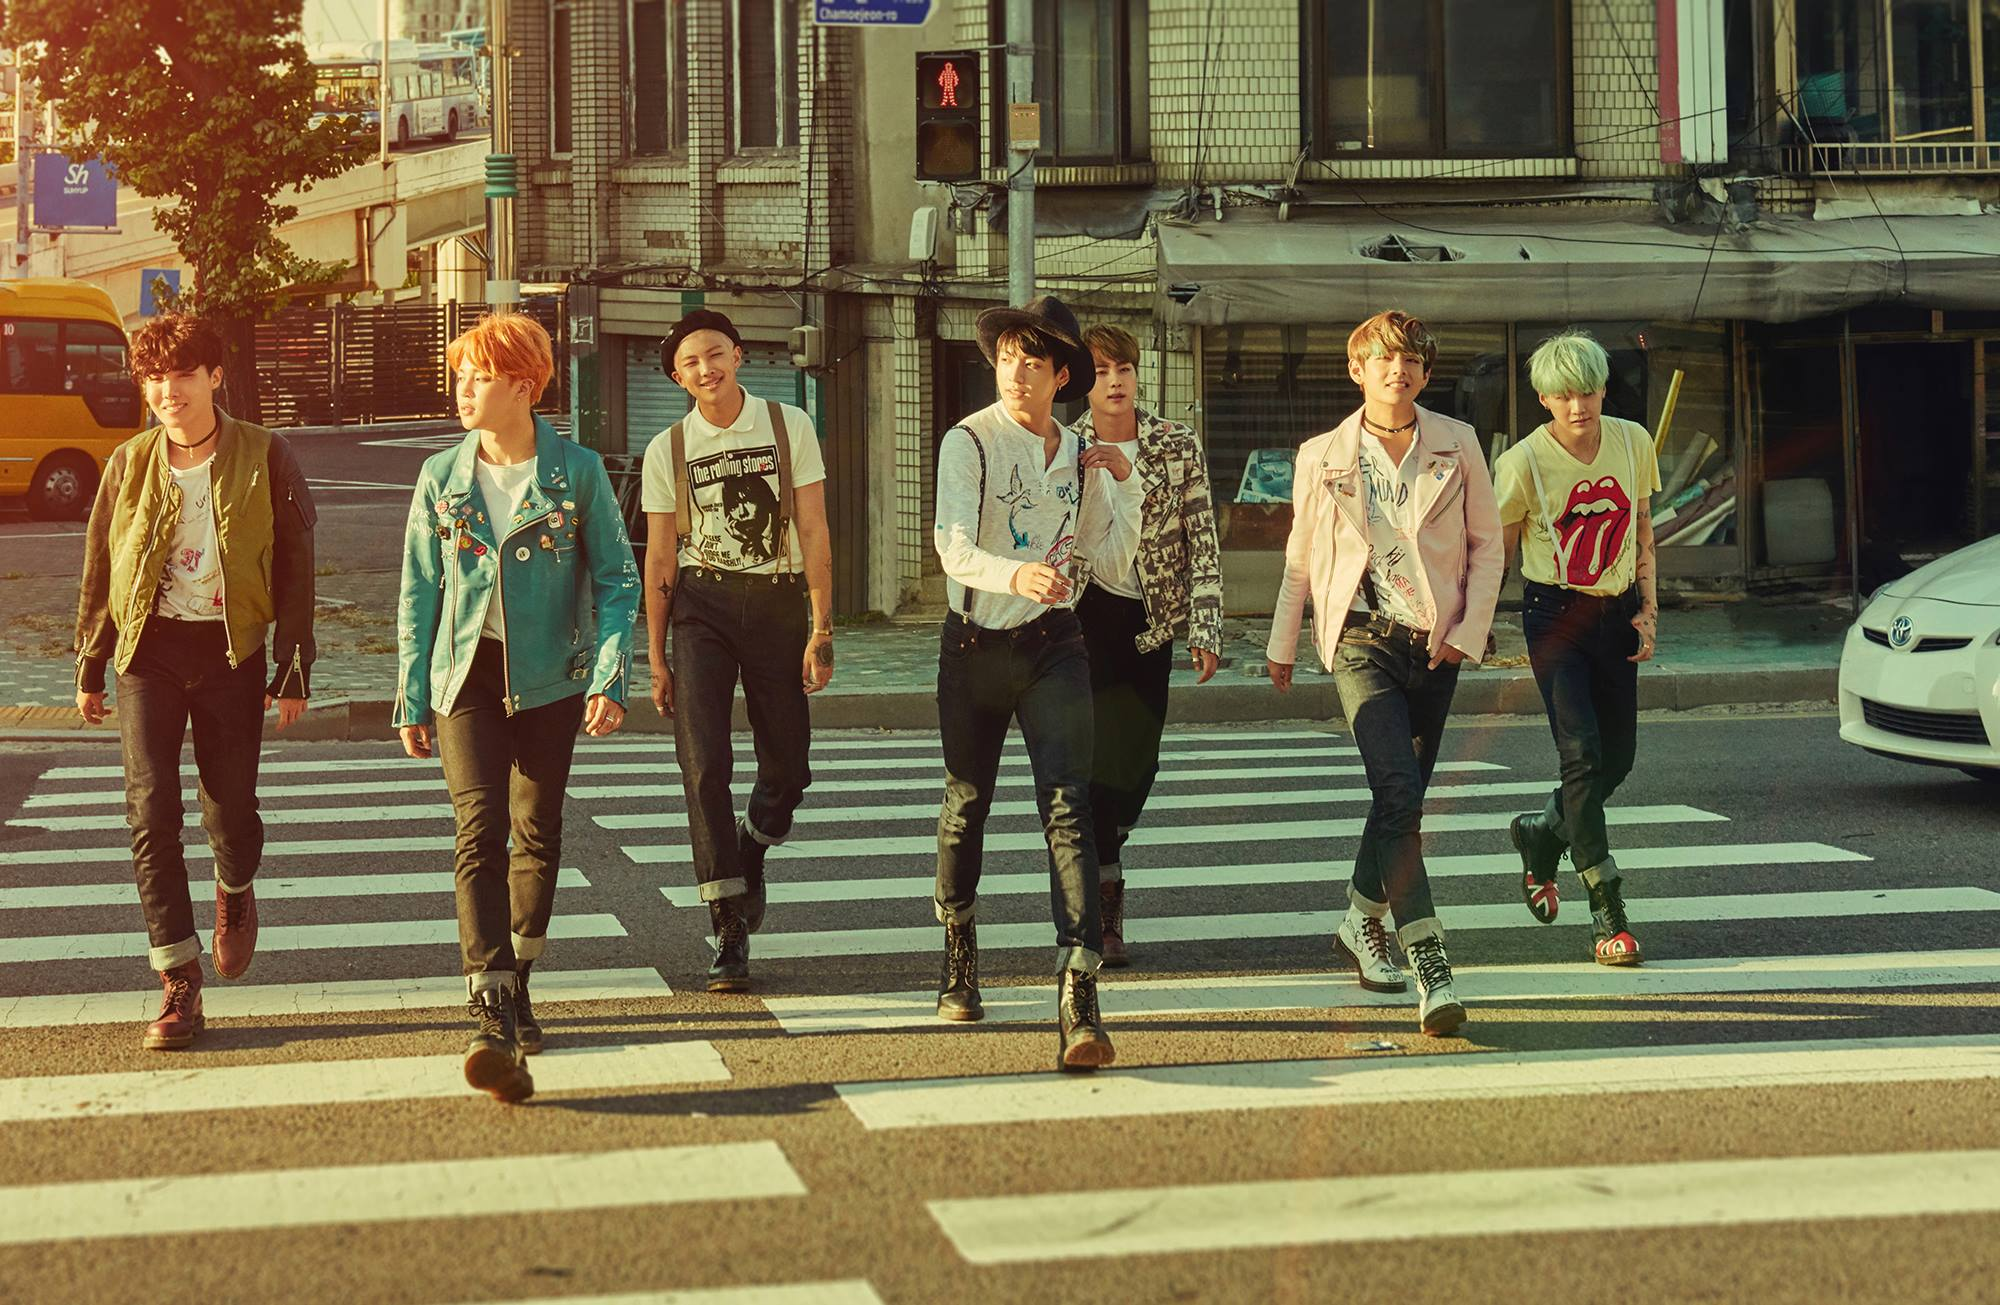 BTS drops video with snippets of new tracks in upcoming album